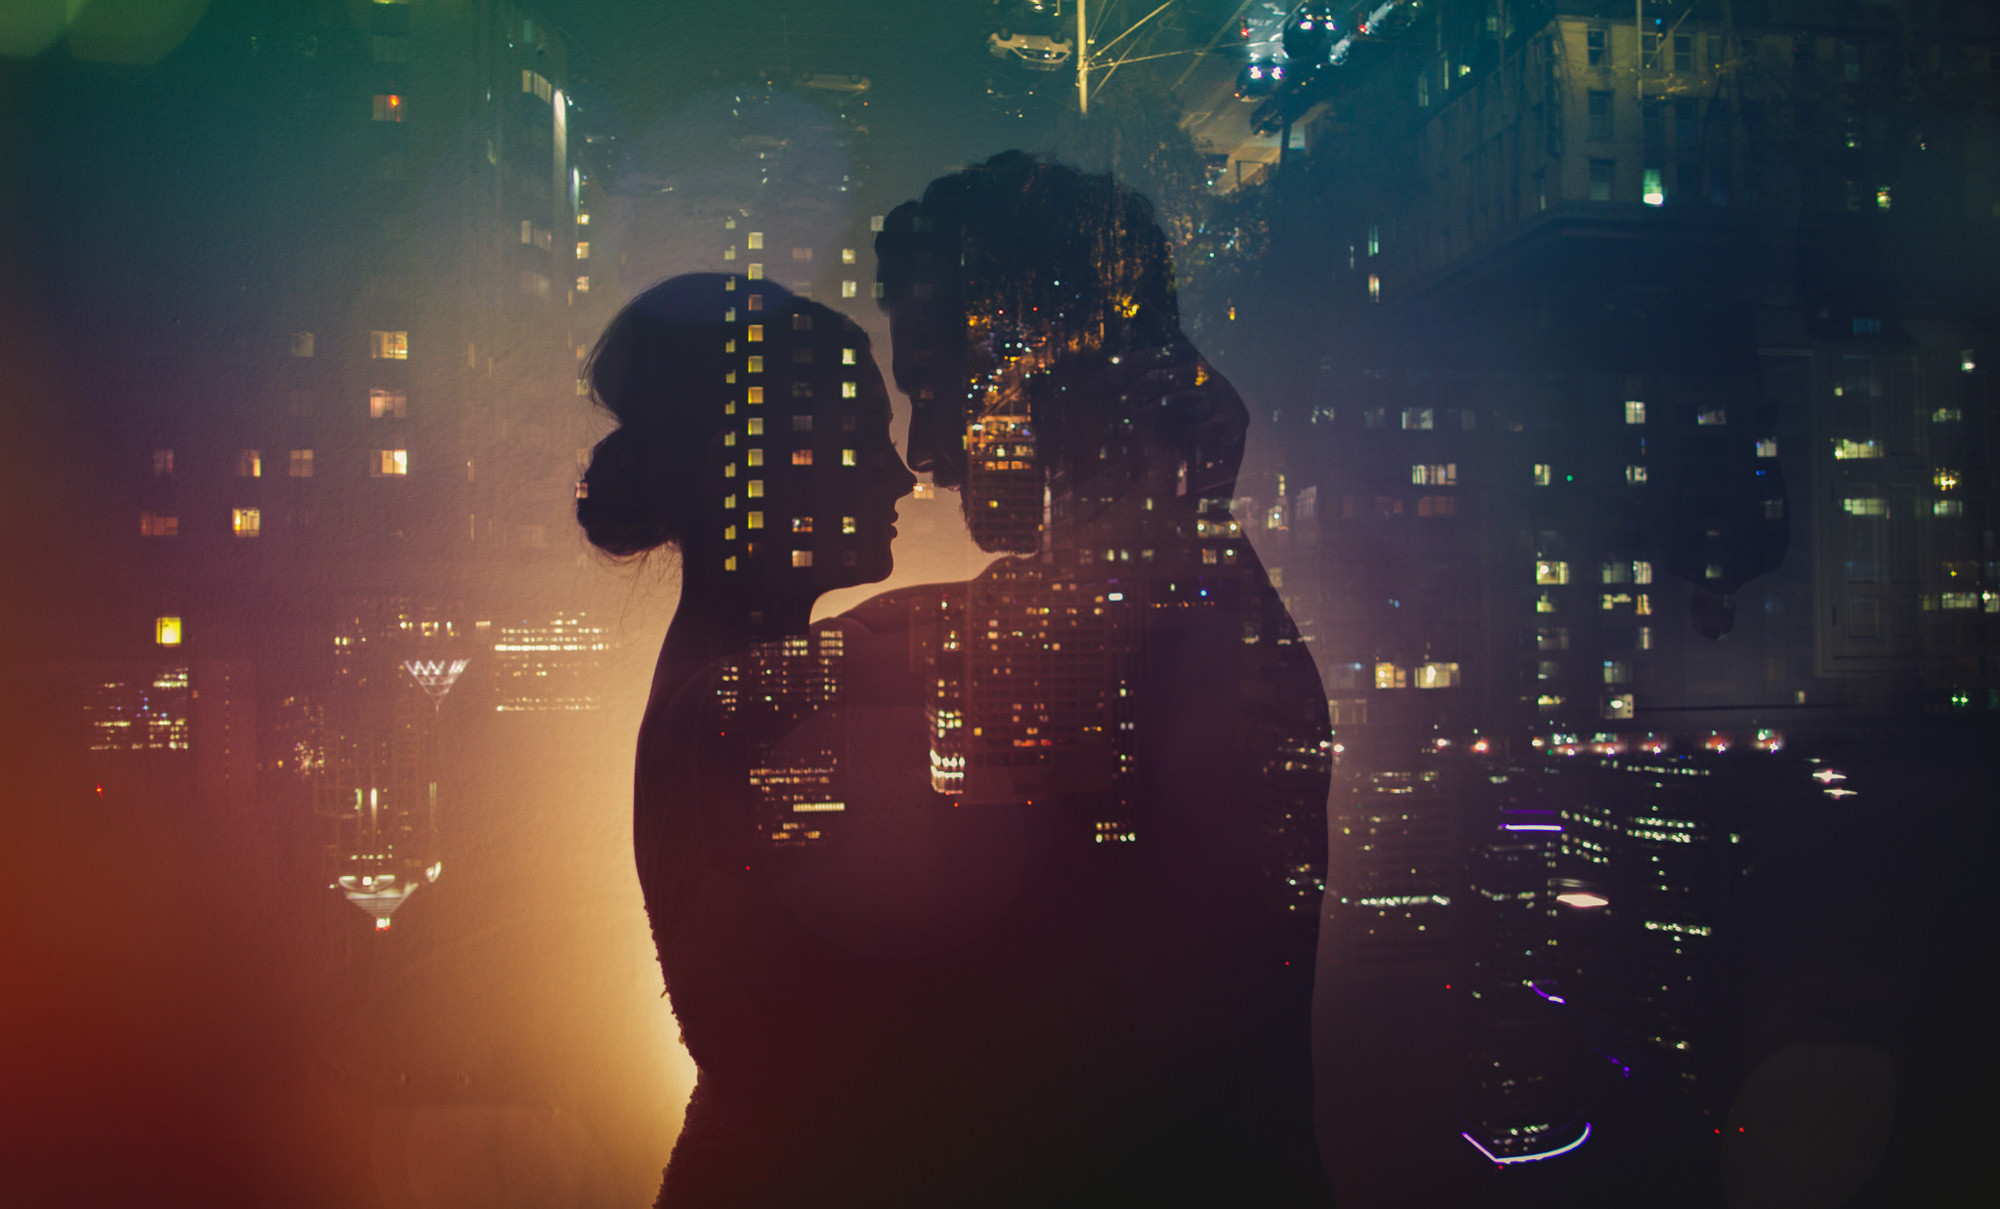 Multiple exposure silhouette of couple against city lights, by Jeff Newsom